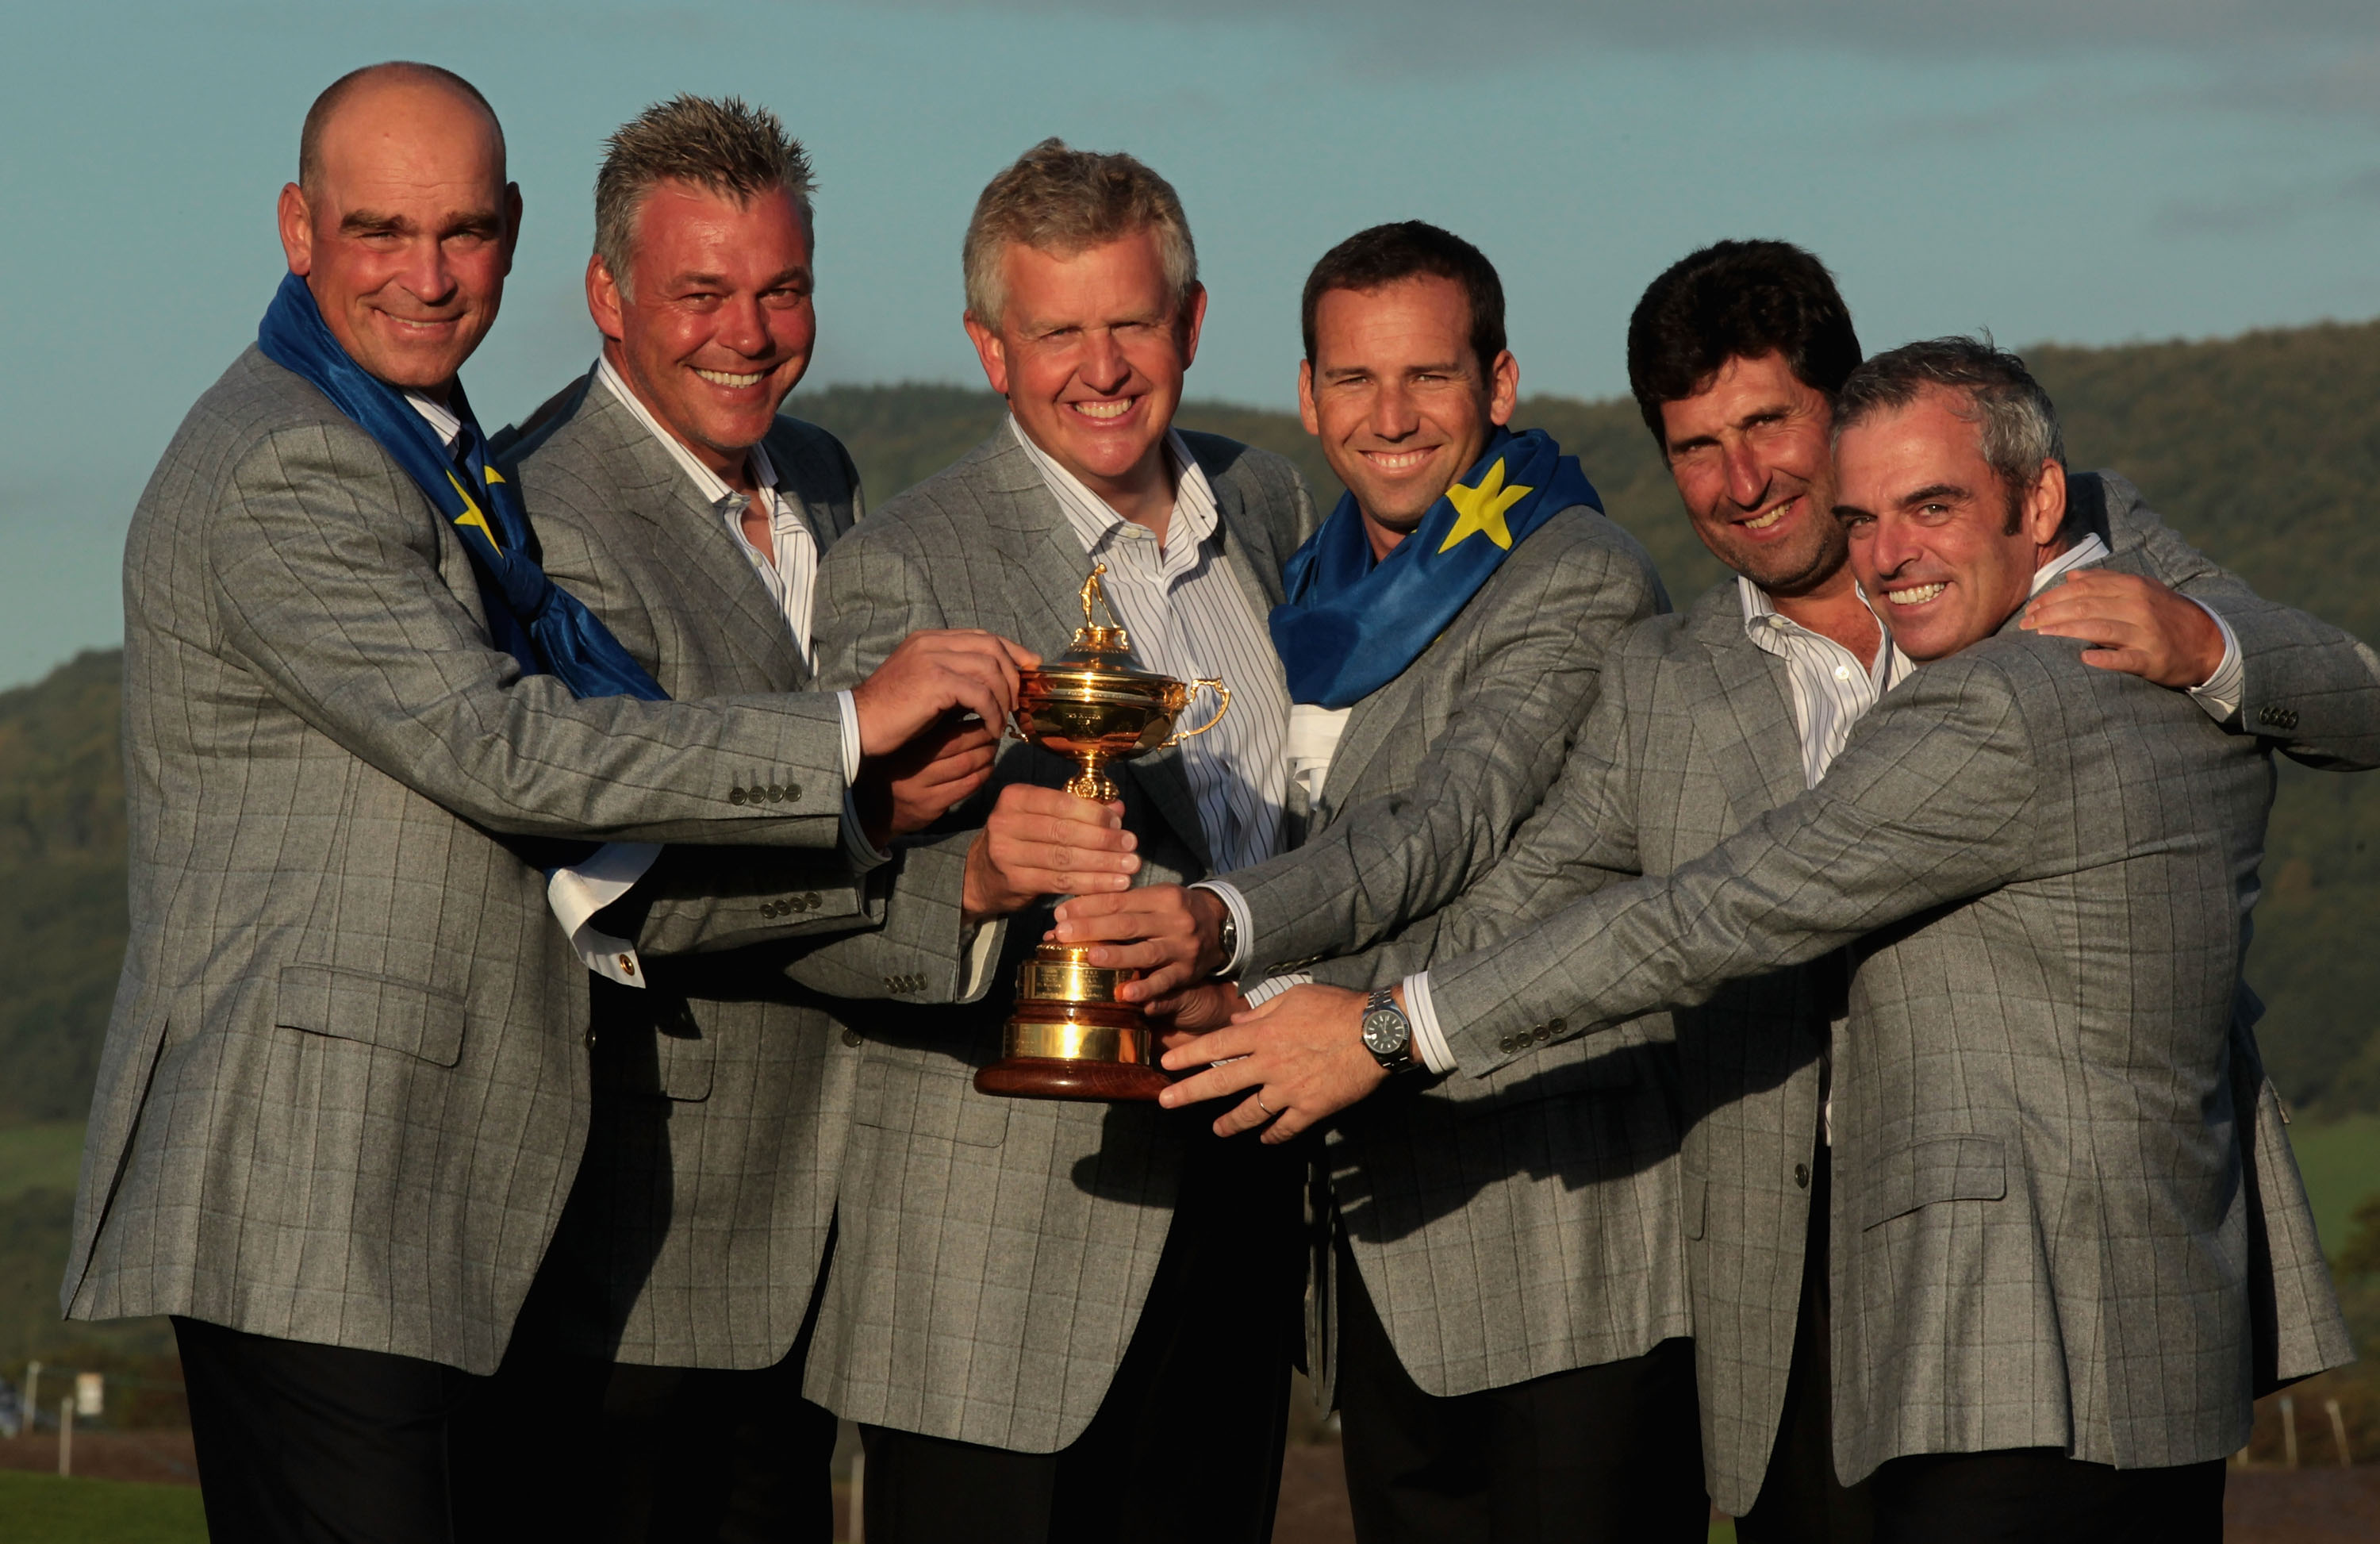 NEWPORT, WALES - OCTOBER 04:  European Team Captain Colin Montgomerie (C) poses with the Ryder Cup and his vice captains (L-R) Thomas Bjorn, Darren Clarke, Sergio Garcia, Jose Maria Olazabal and Paul McGinley following Europe's 14.5 to 13.5 victory over t